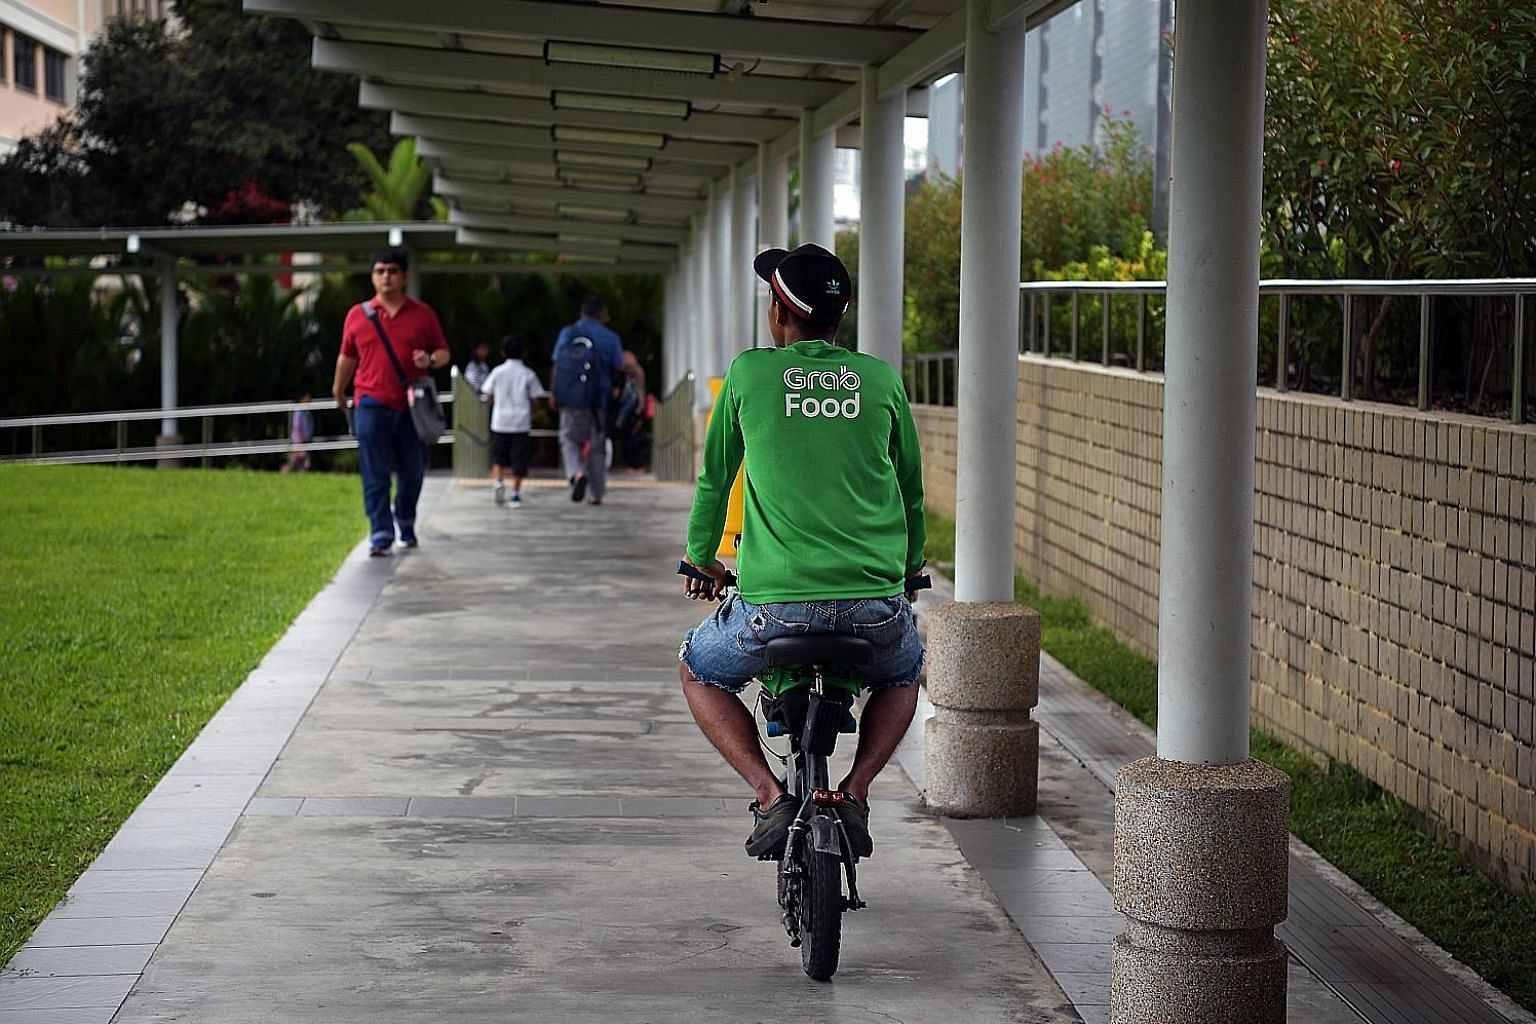 A Grab deliveryman riding a personal mobility device on a pavement next to Bishan MRT station last May, before a ban was introduced last November. GrabFood said yesterday that riders caught riding e-scooters on footpaths will no longer work for the c